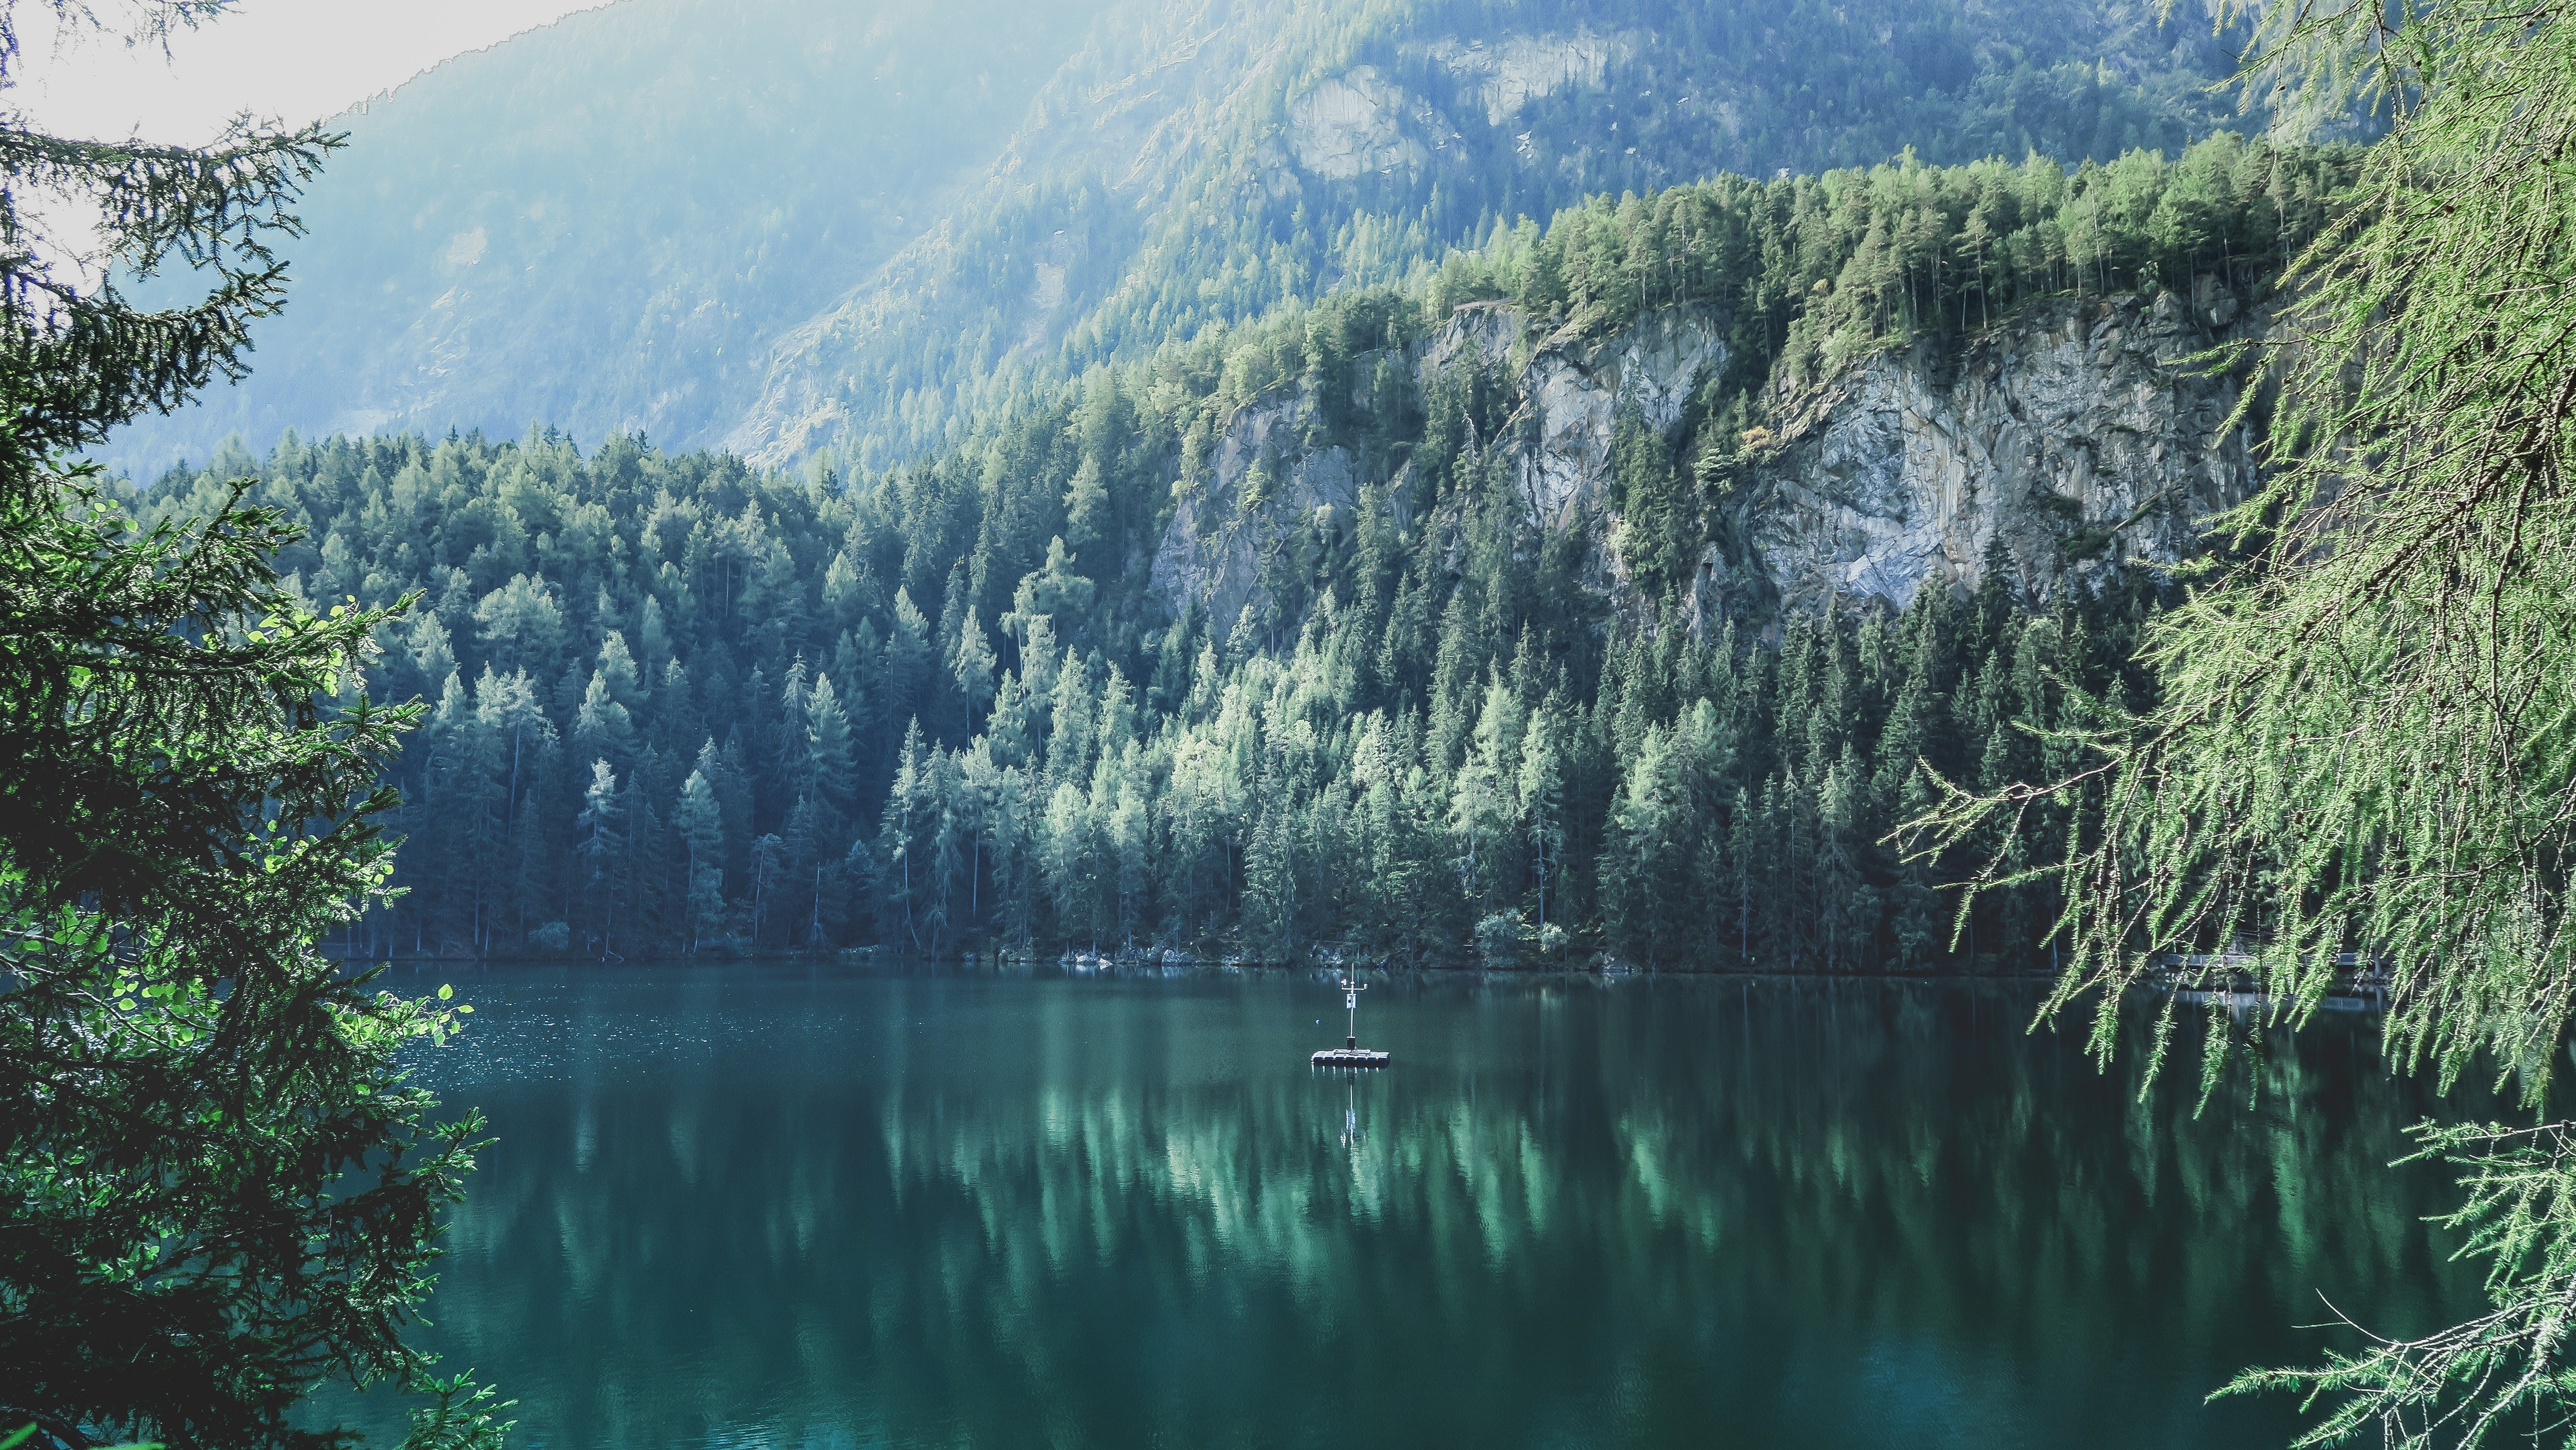 Rocky slopes and woods overlooking the still surface of Lake Piburger See